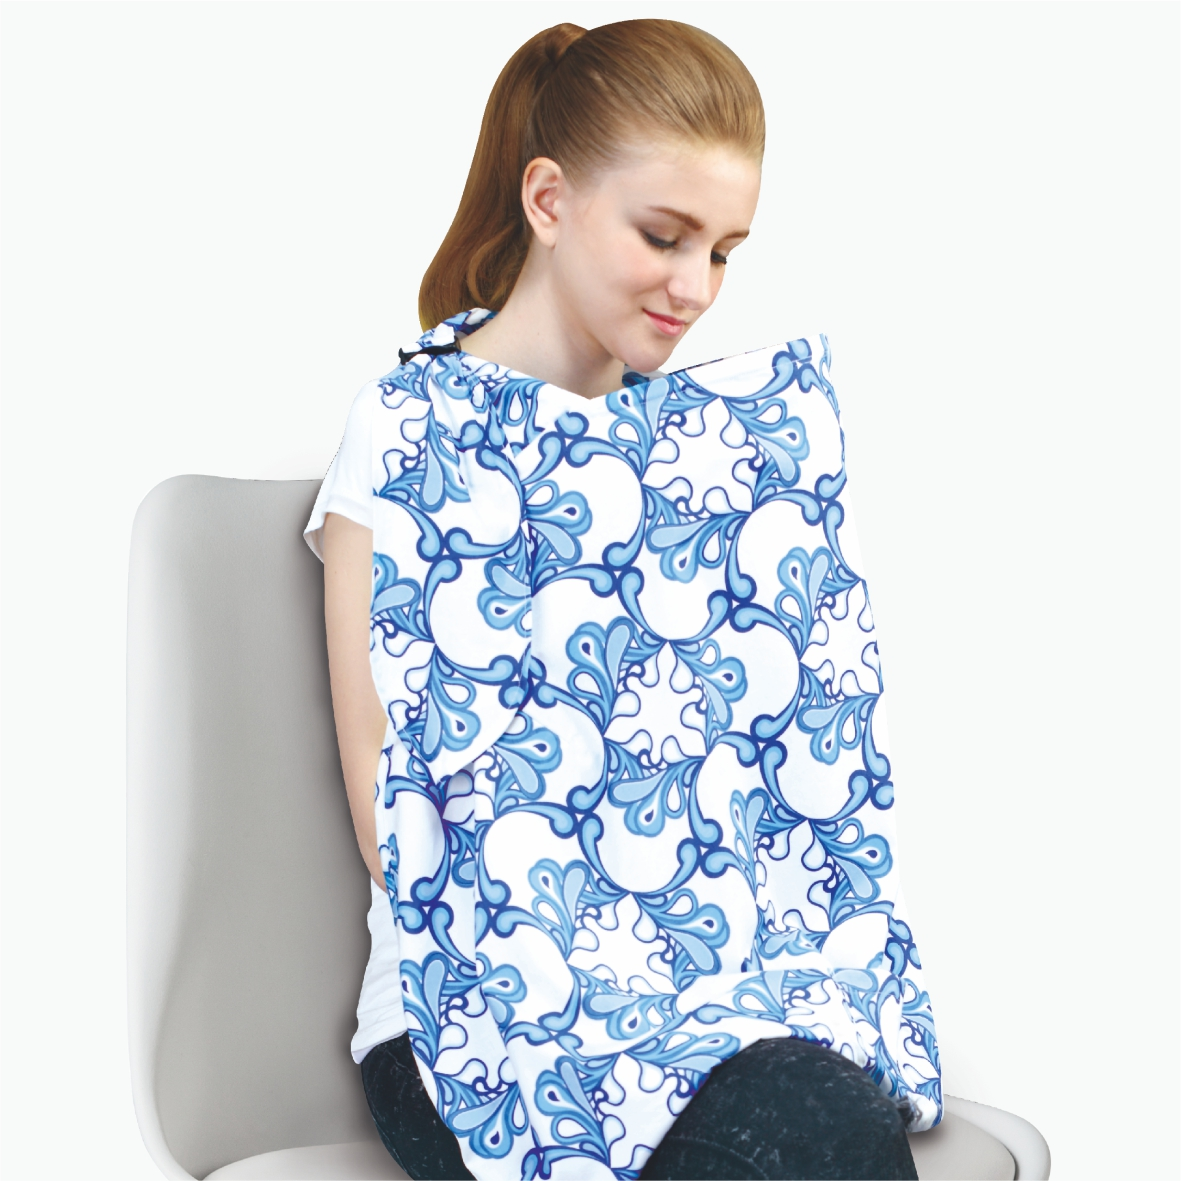 naforye baby Hide-And-Seek Baby Nursing Cover